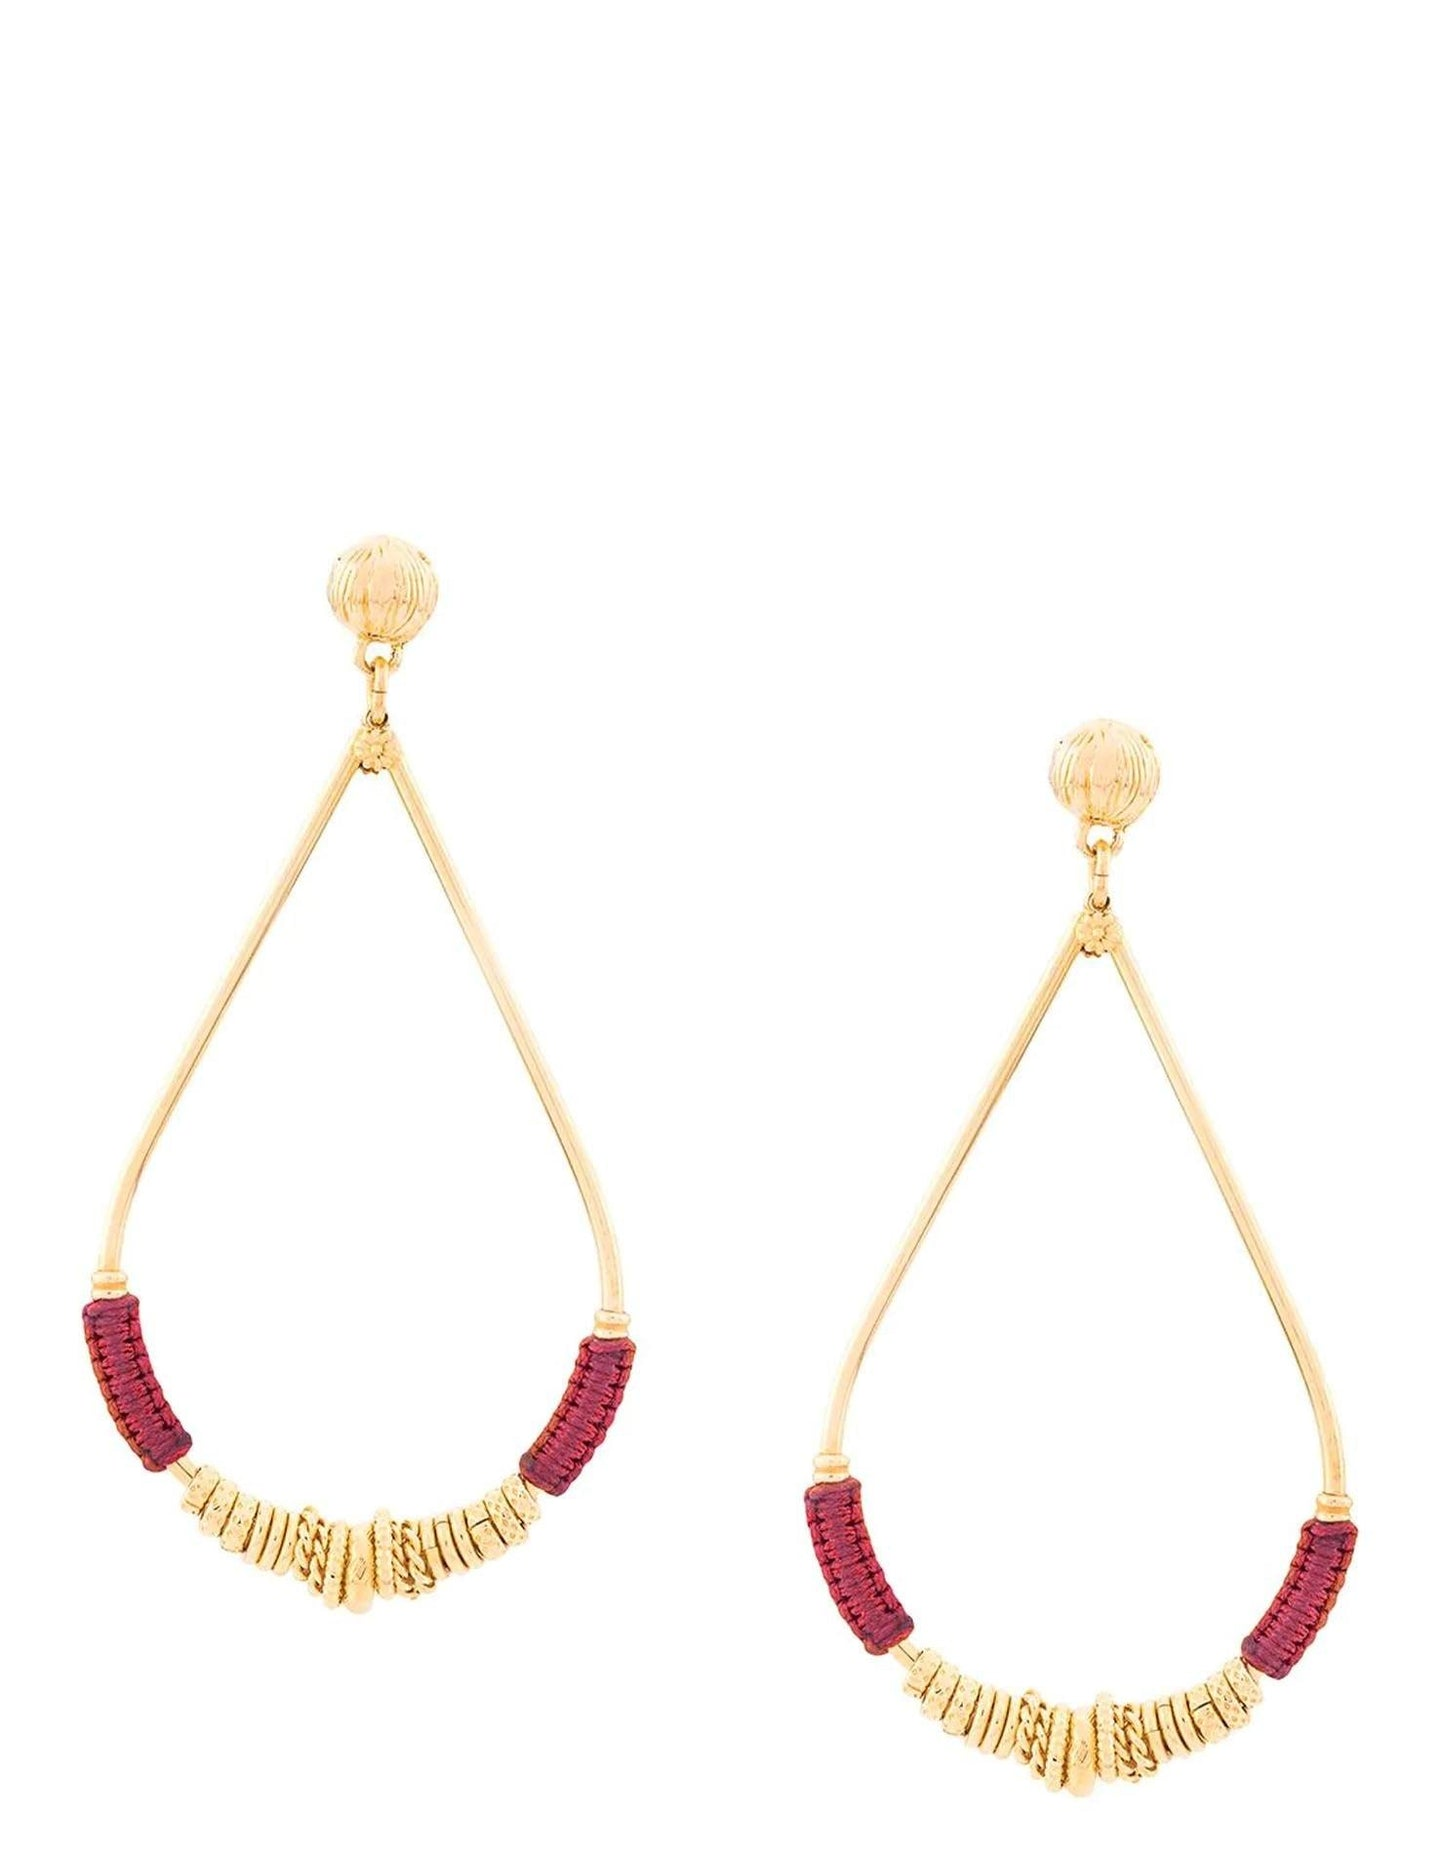 ZIZANIE EARRINGS